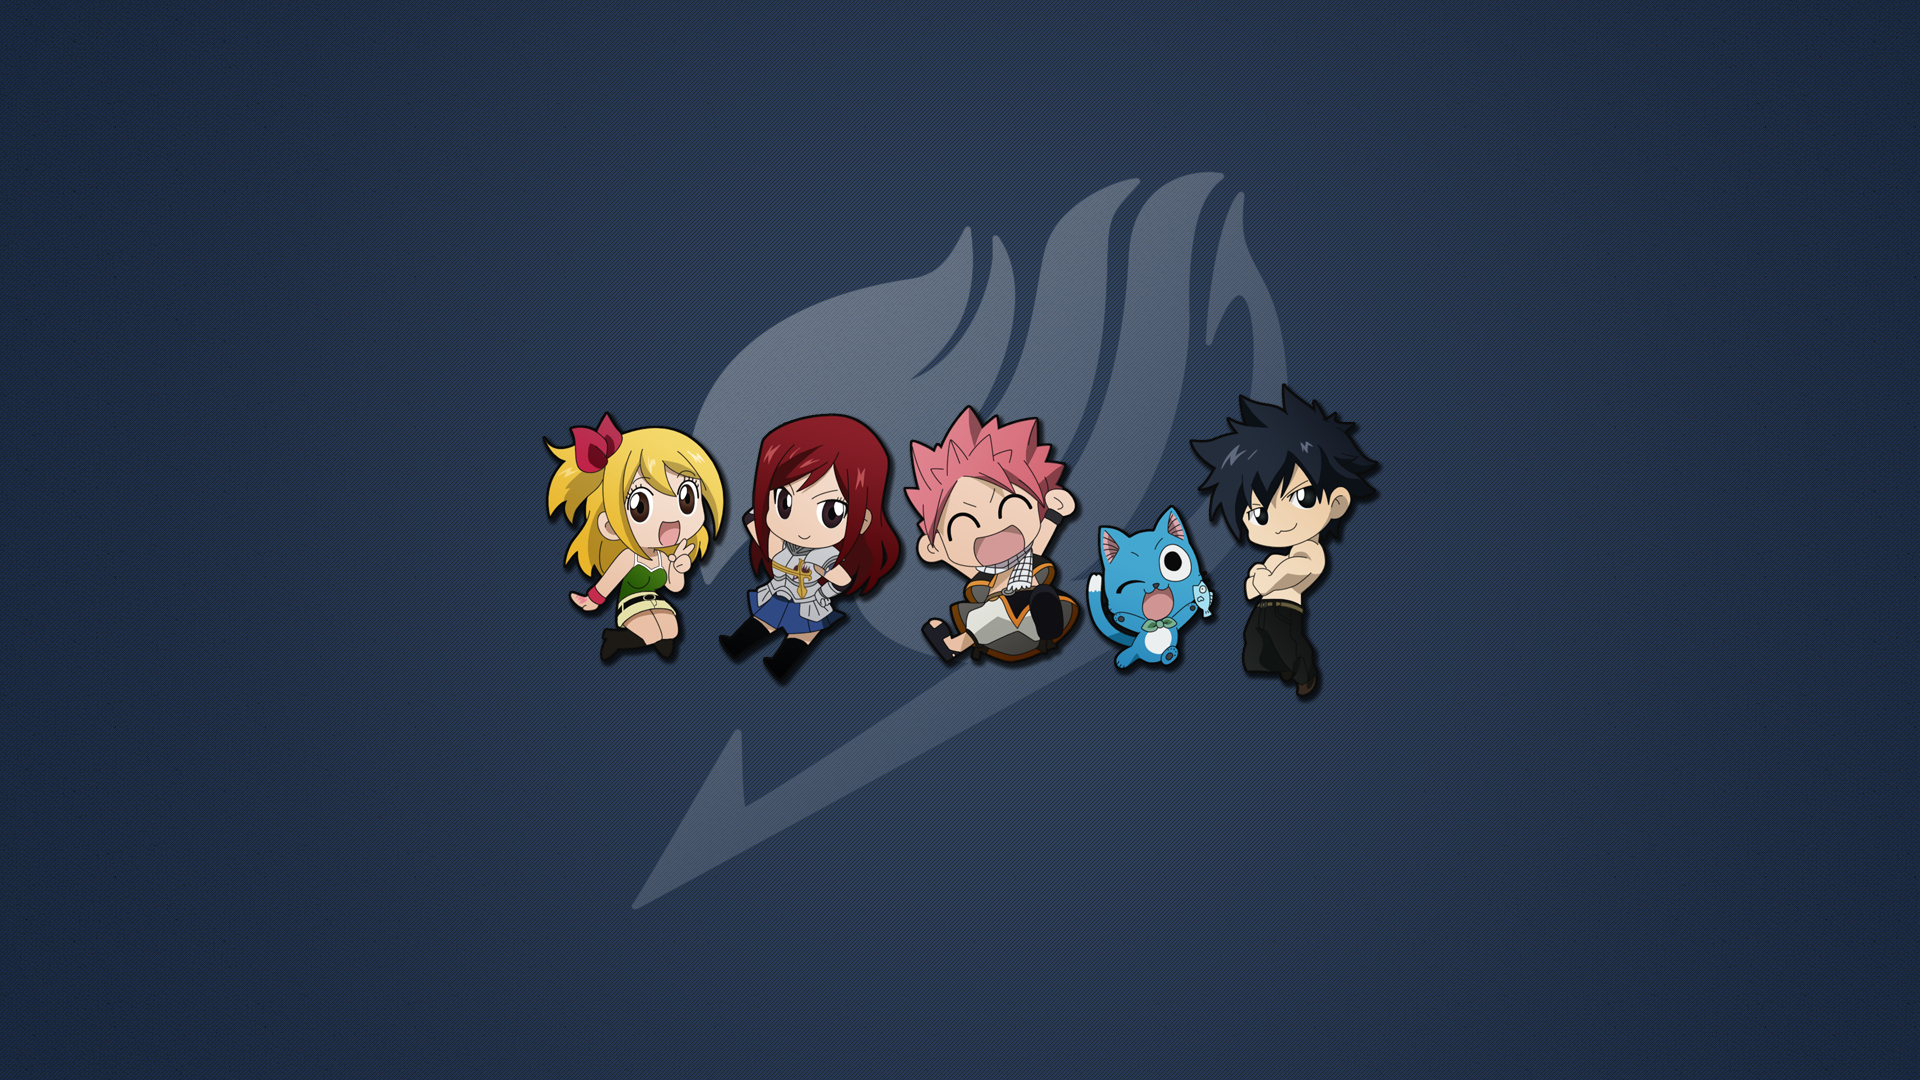 Fairy Tail Computer Wallpapers Desktop Backgrounds 1920x1080 ID 1920x1080